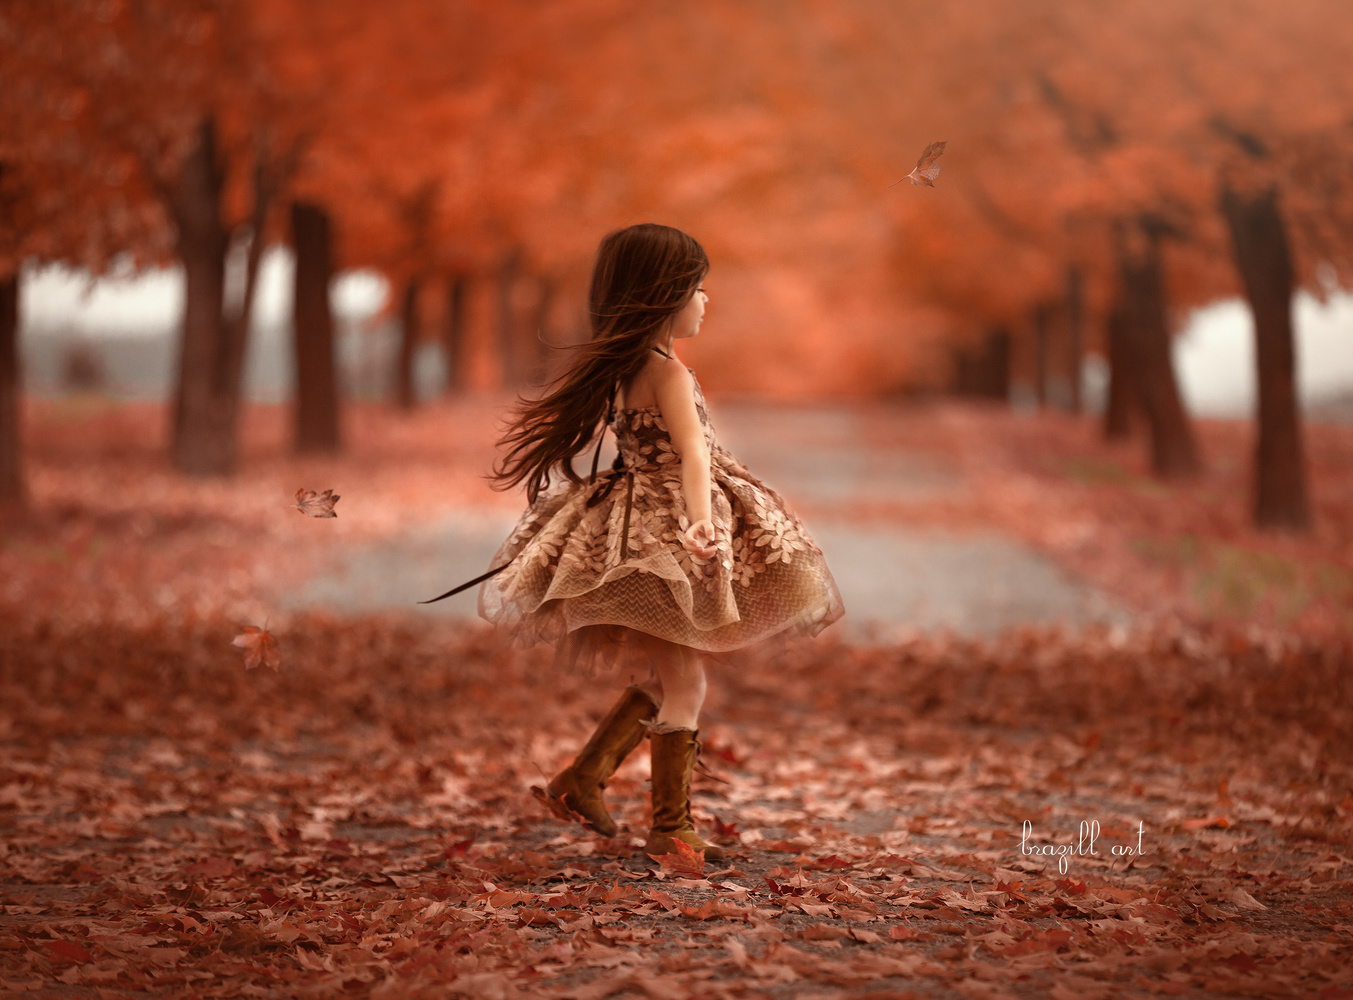 Dance of the Leaves by Robin Brazill